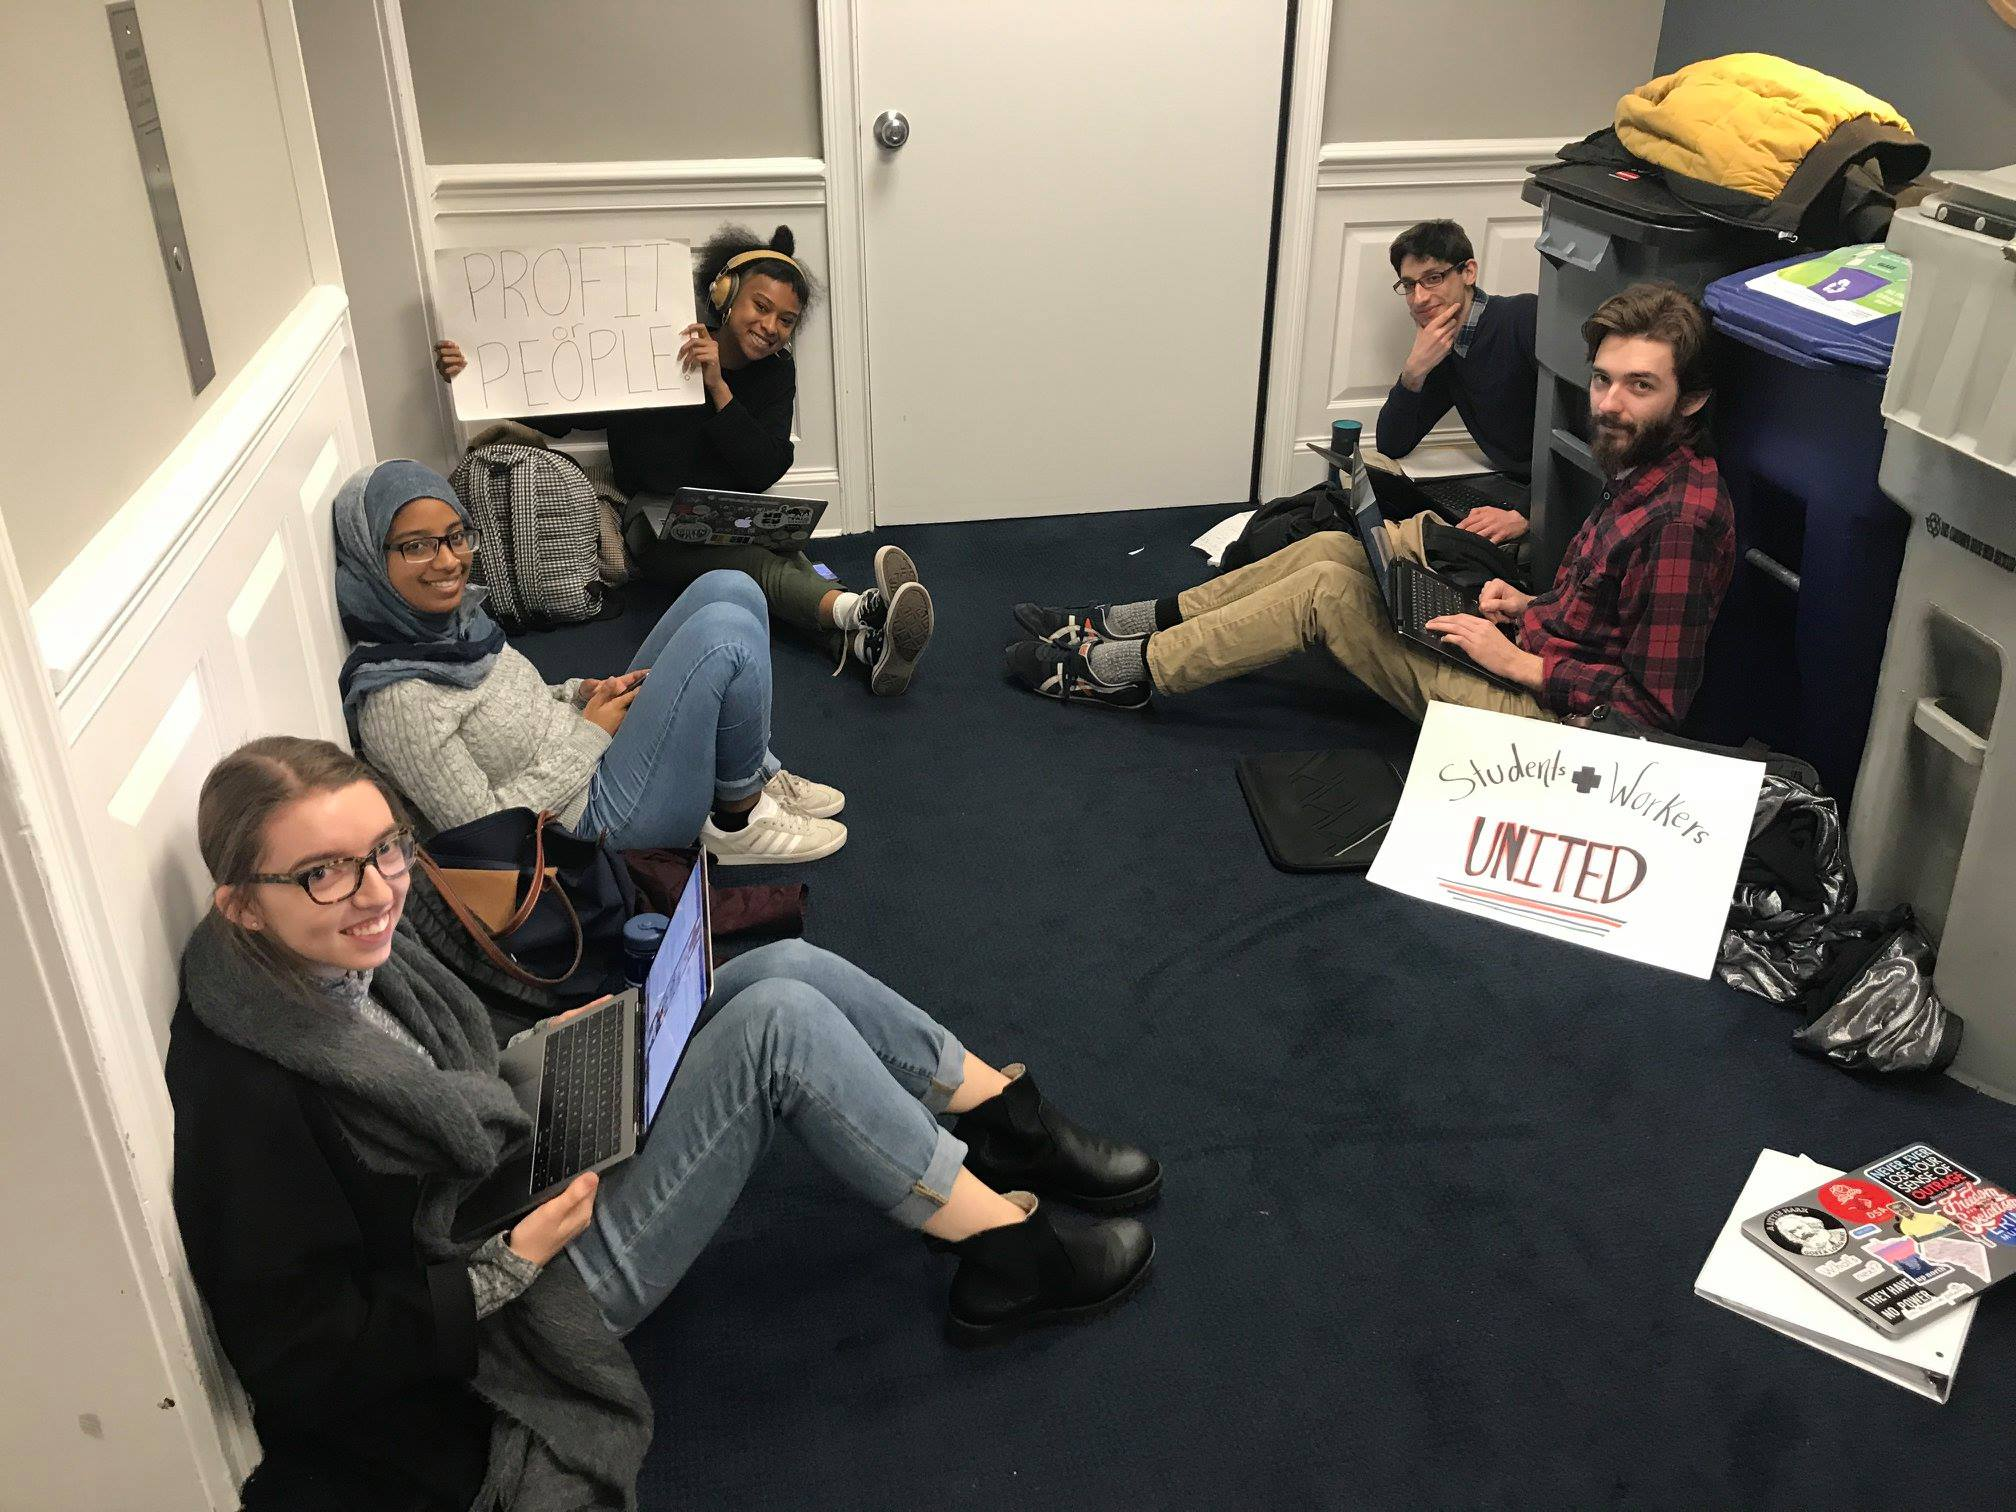 - Fair Jobs organizers ended the Fall 2018 semester with a sit-in at President LeBlanc's office, asking him to explain why GW administrators get paid millions while the lowest-paid worker at GW only makes $14.50 an hour.